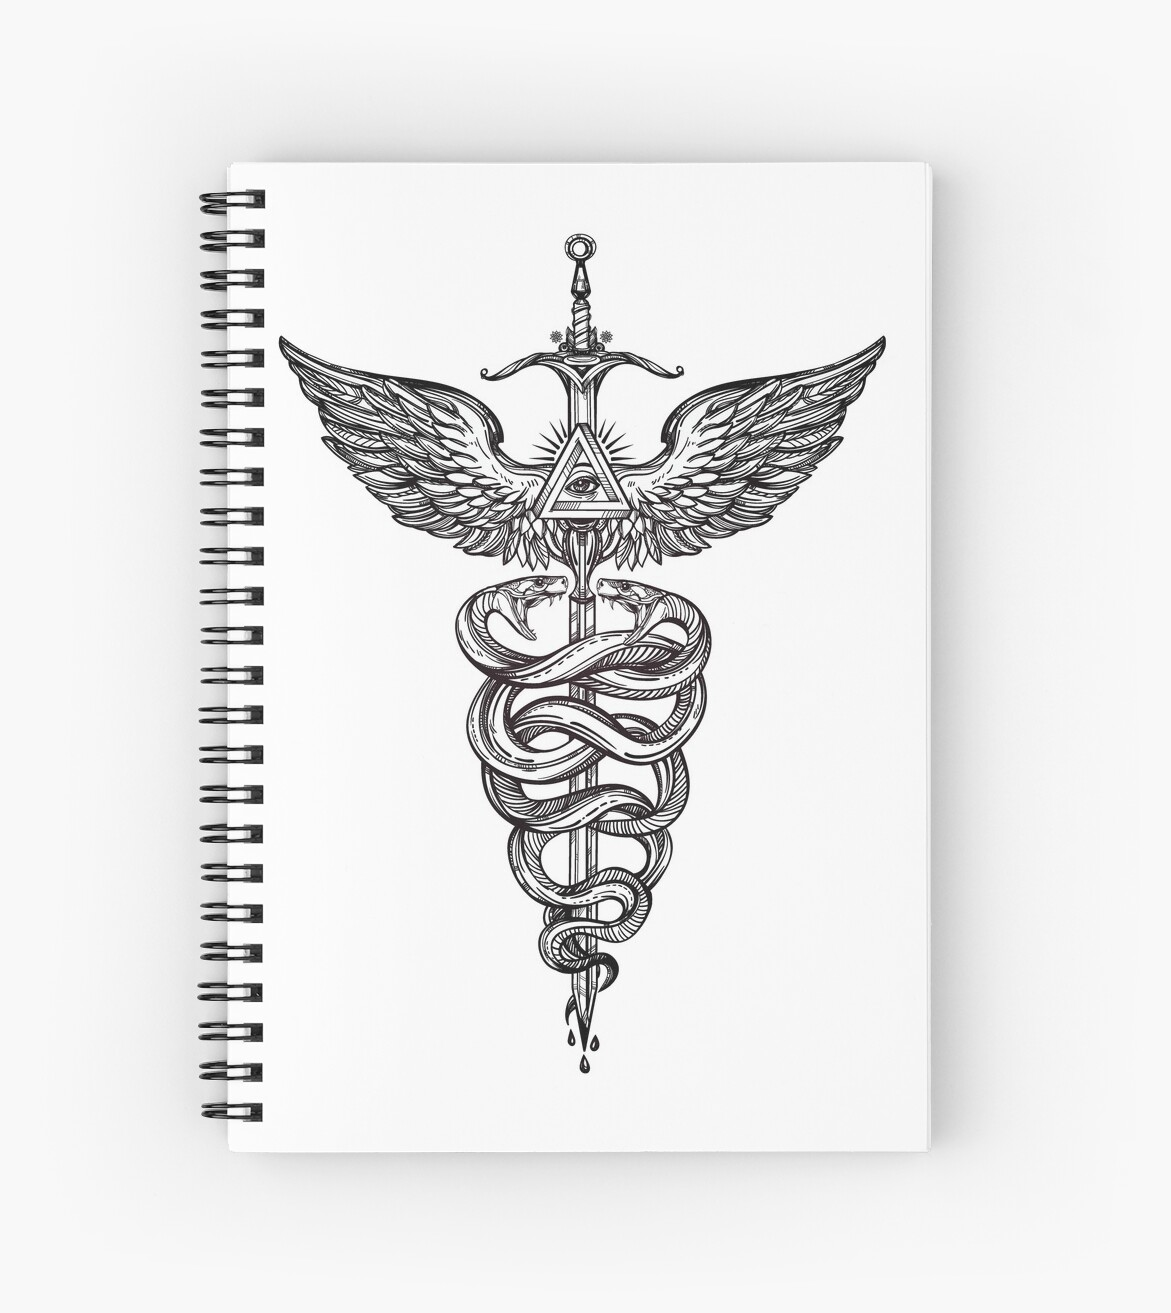 Snakes Winding Around A Winged Sword Caduceus Occult Symbol Spiral